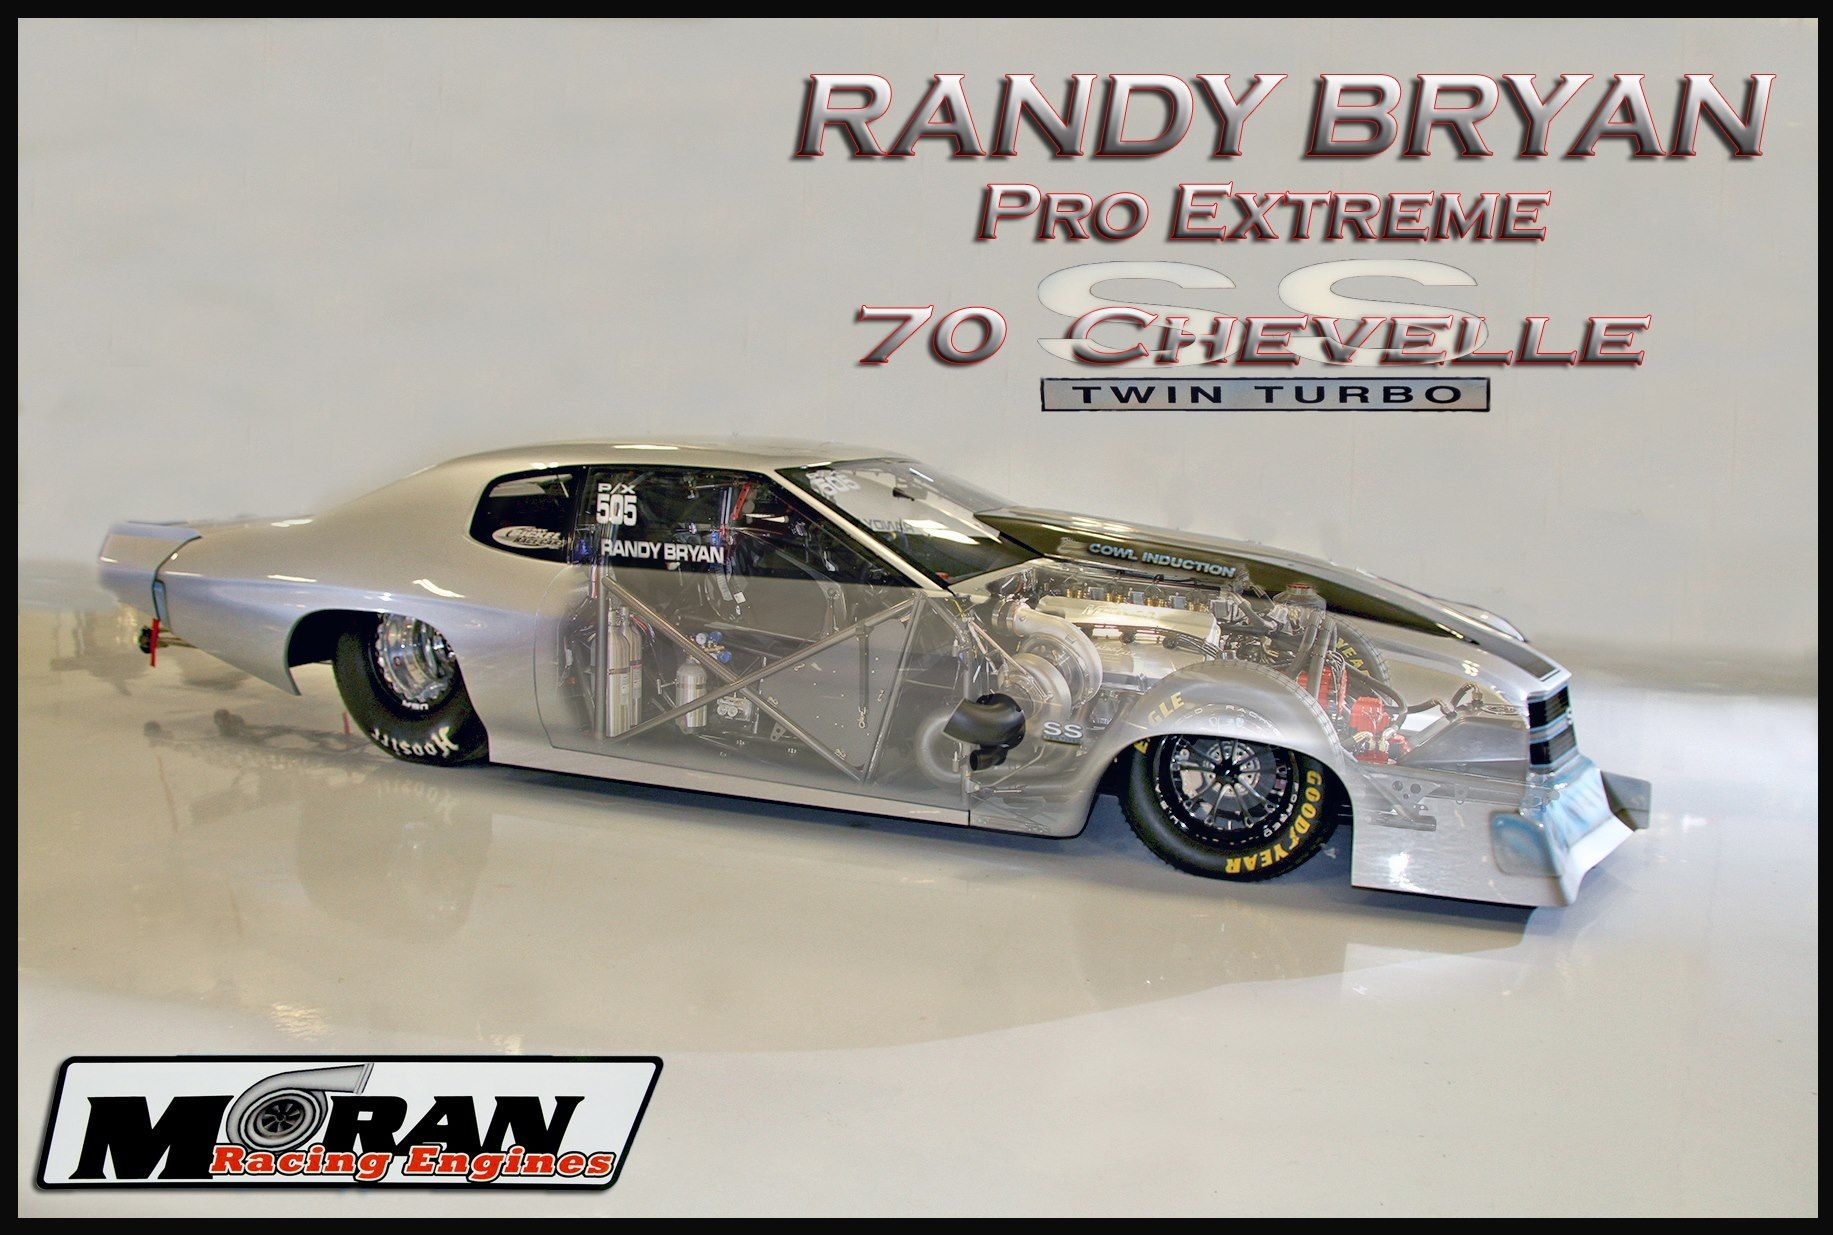 Randy Bryan S New Px Turbo Chevelle From Jerry Bickel Race